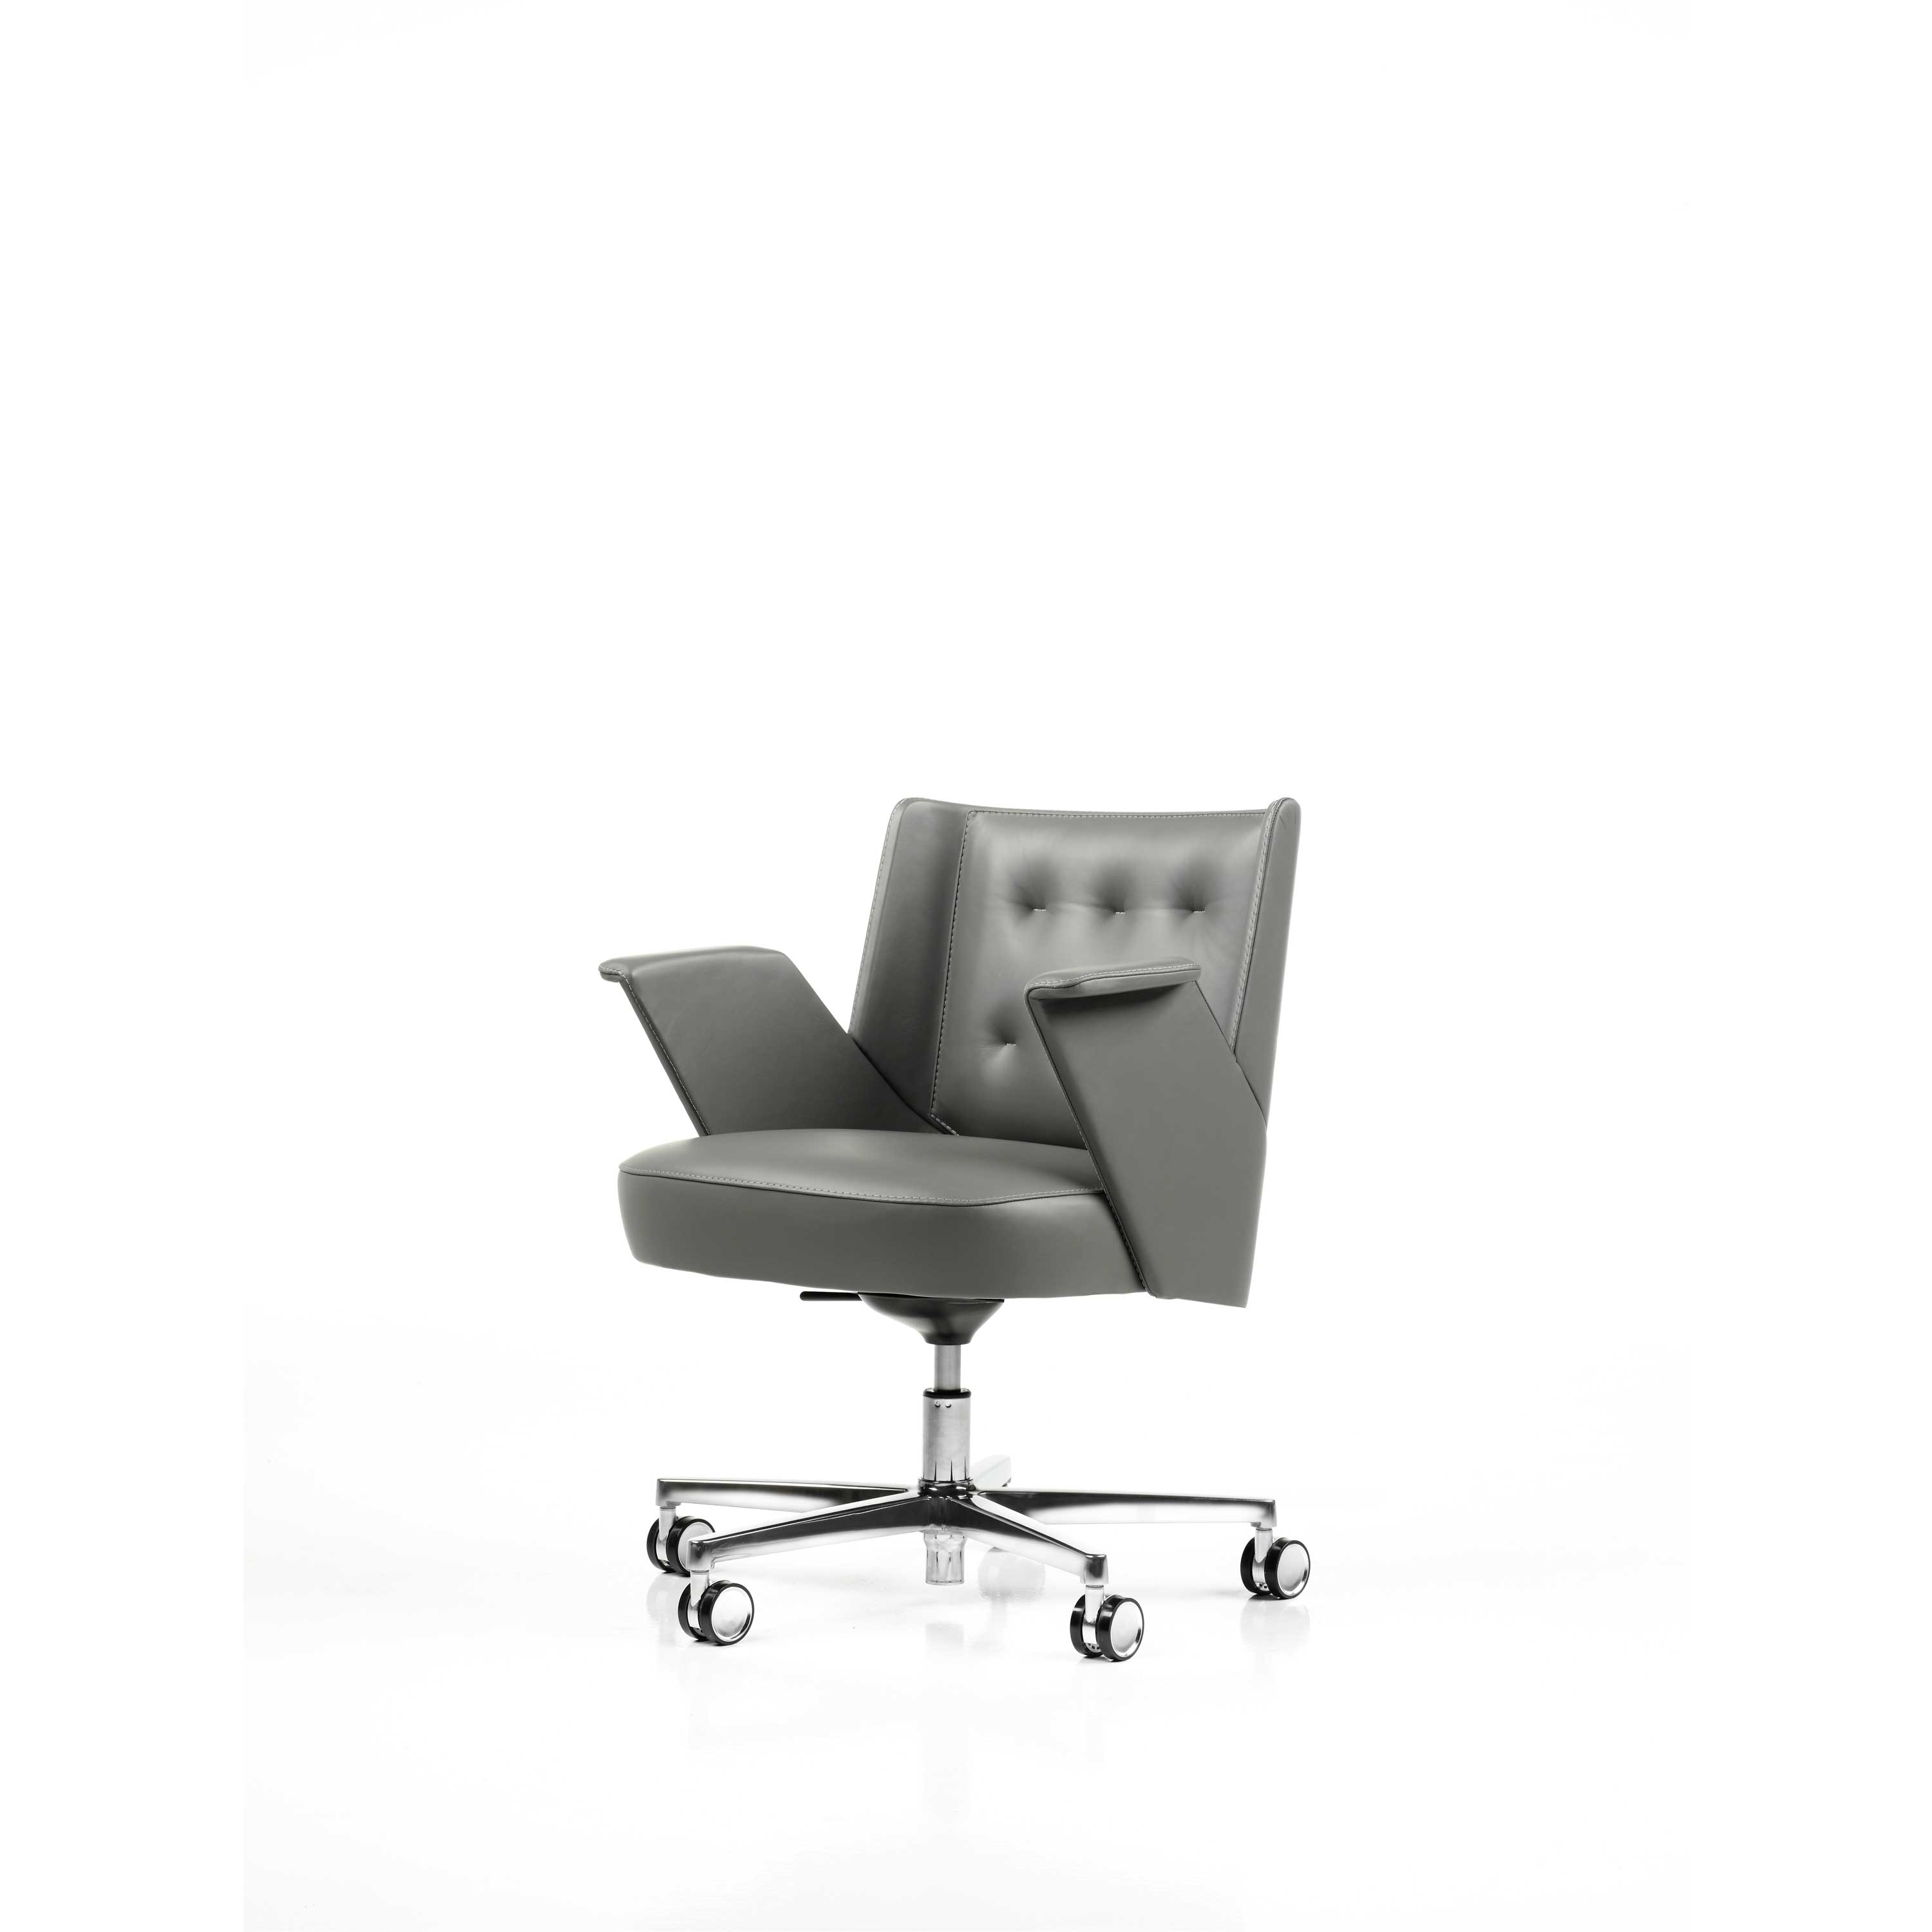 06S_Estel_Comfort&Relax_Office-Chair_Embrasse